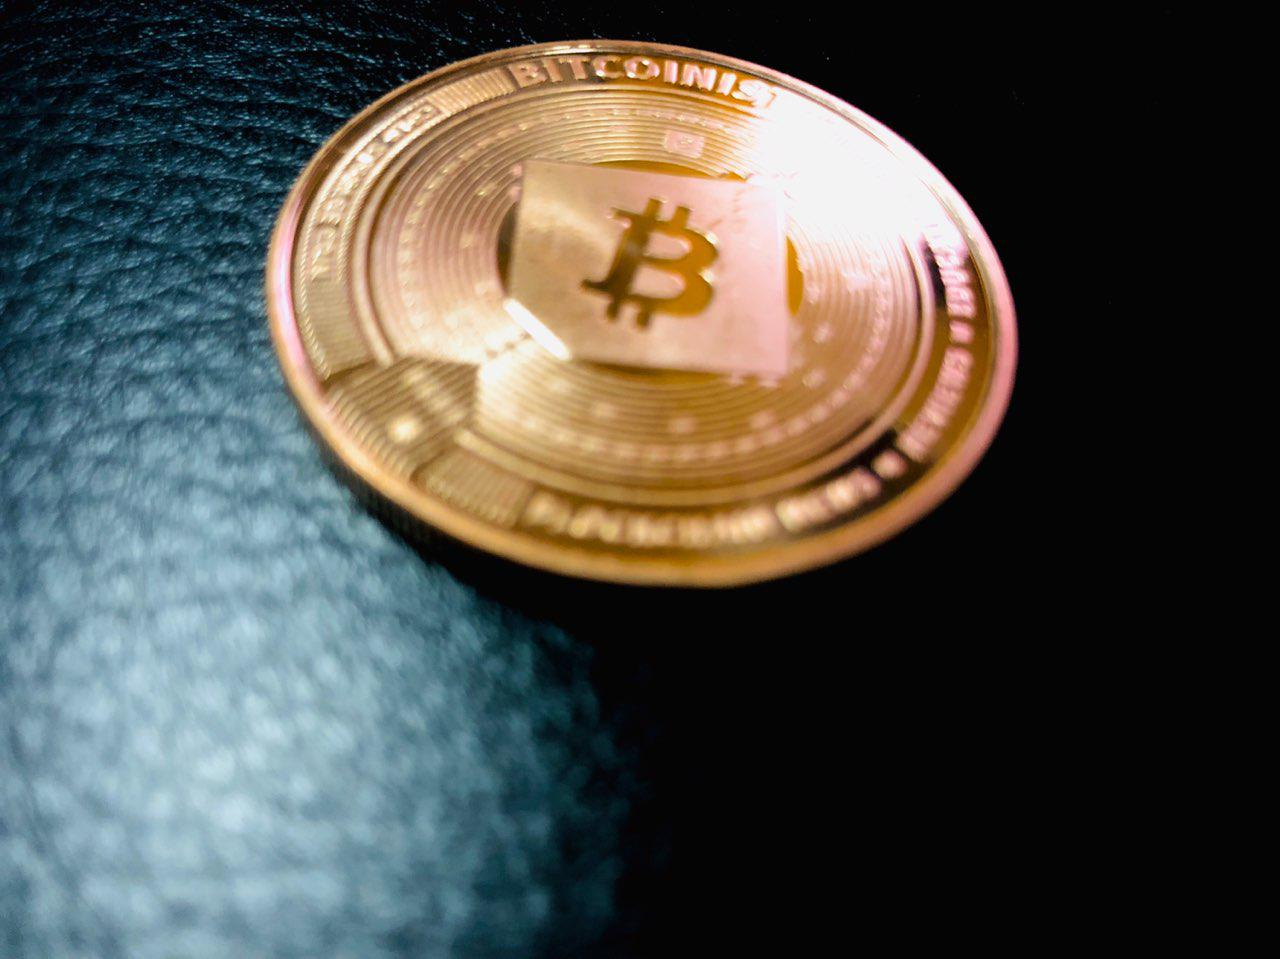 most trending cryptocurrency